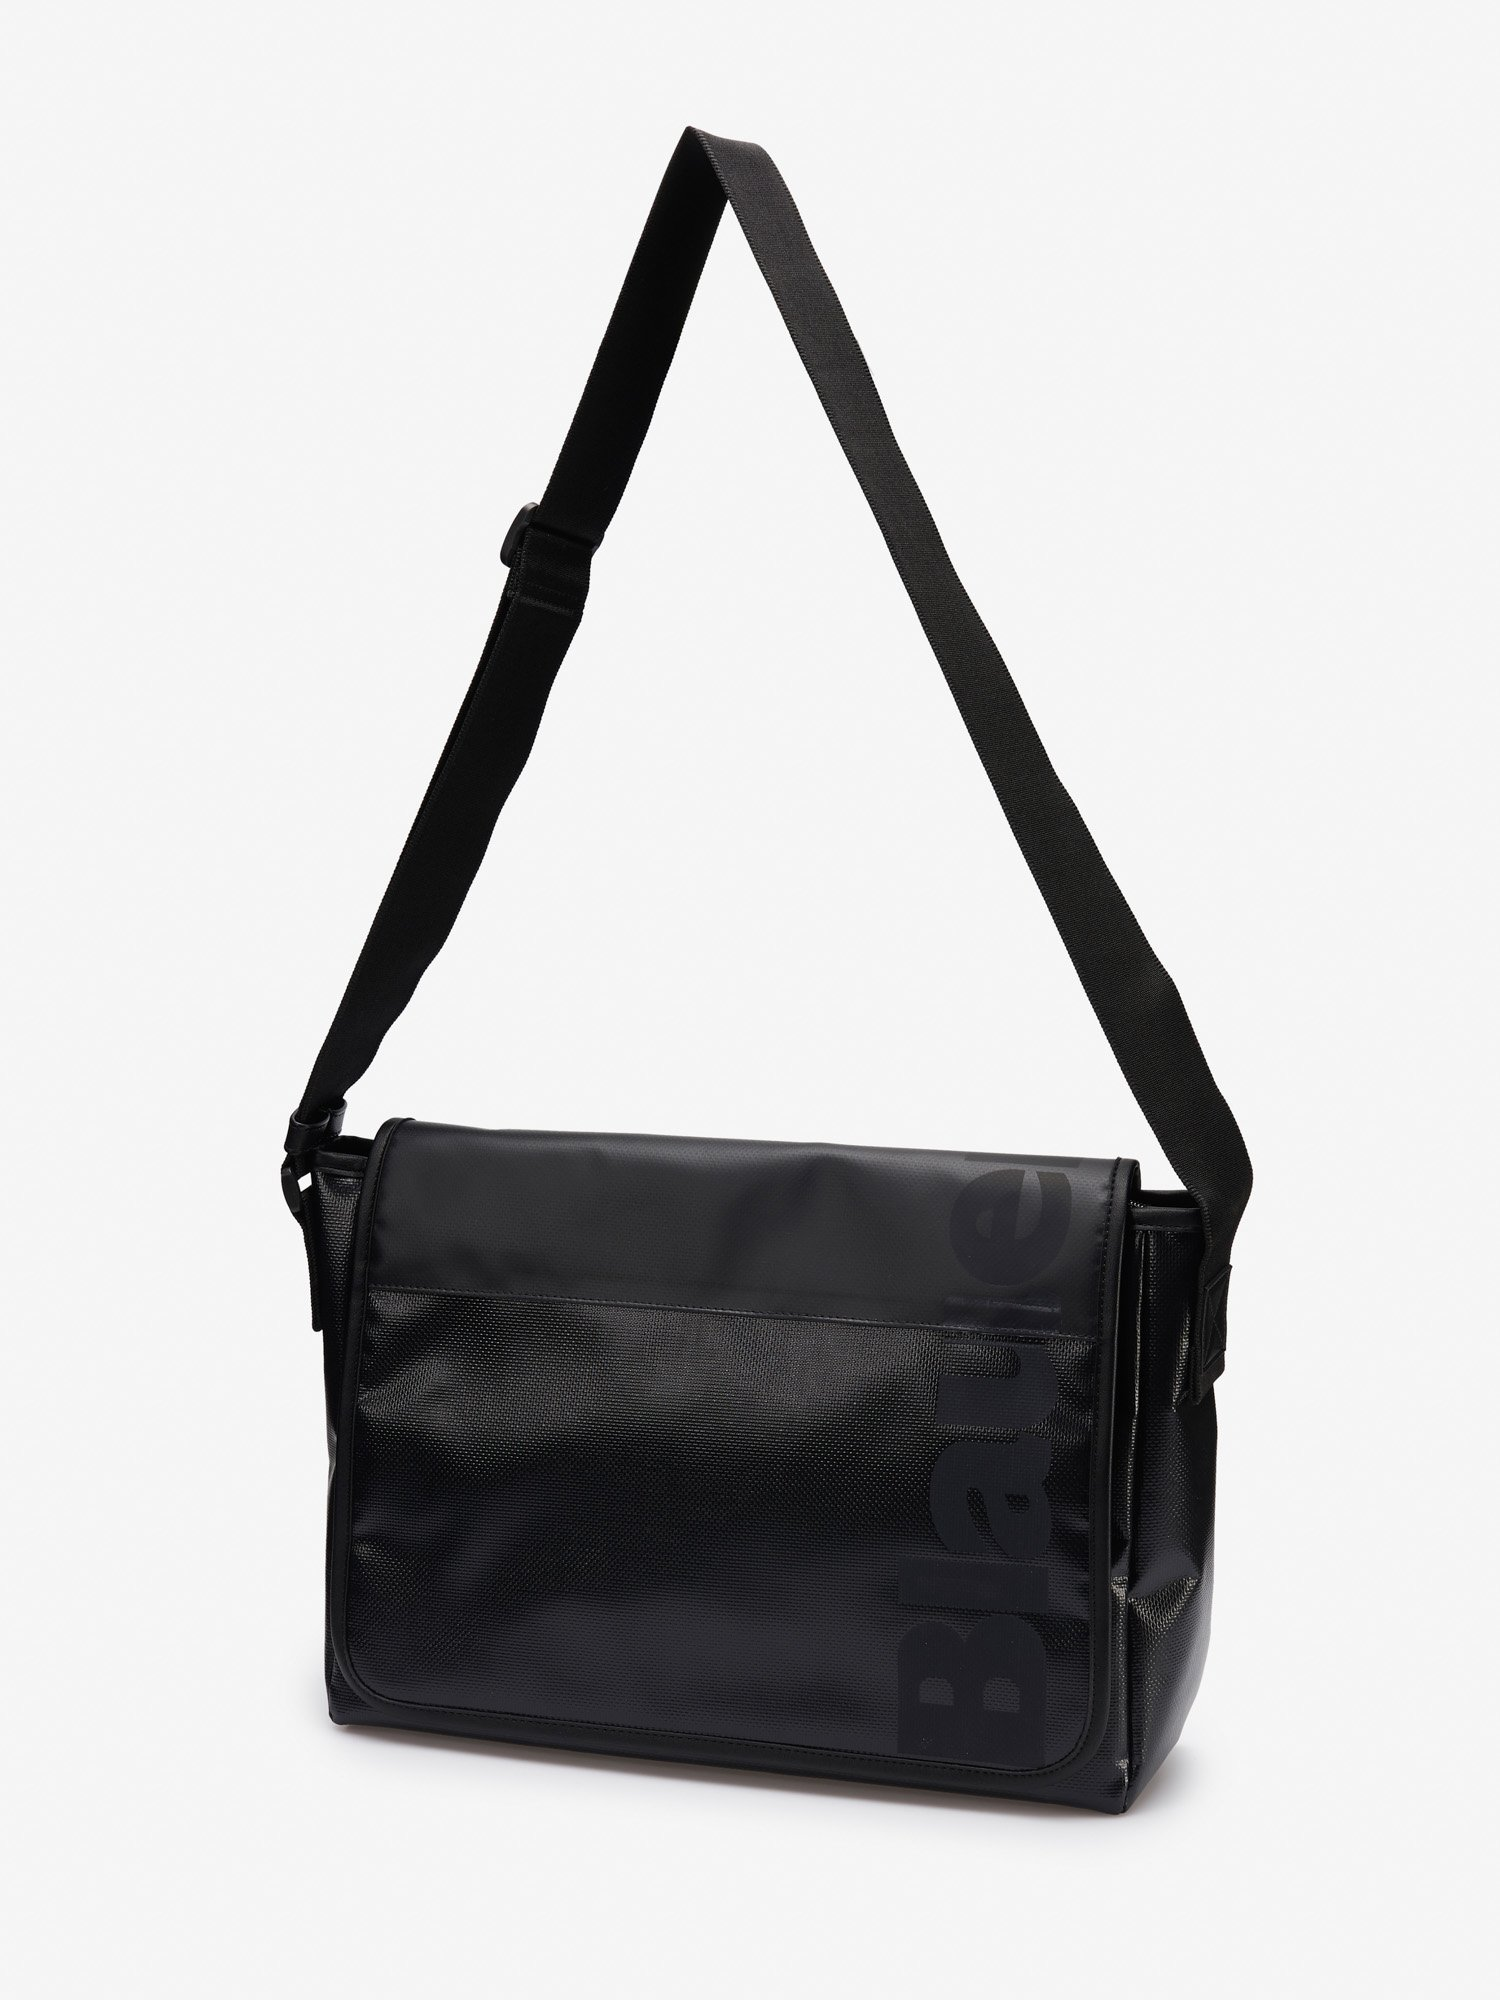 MULTI-USE CROSS-BODY BAG - Blauer